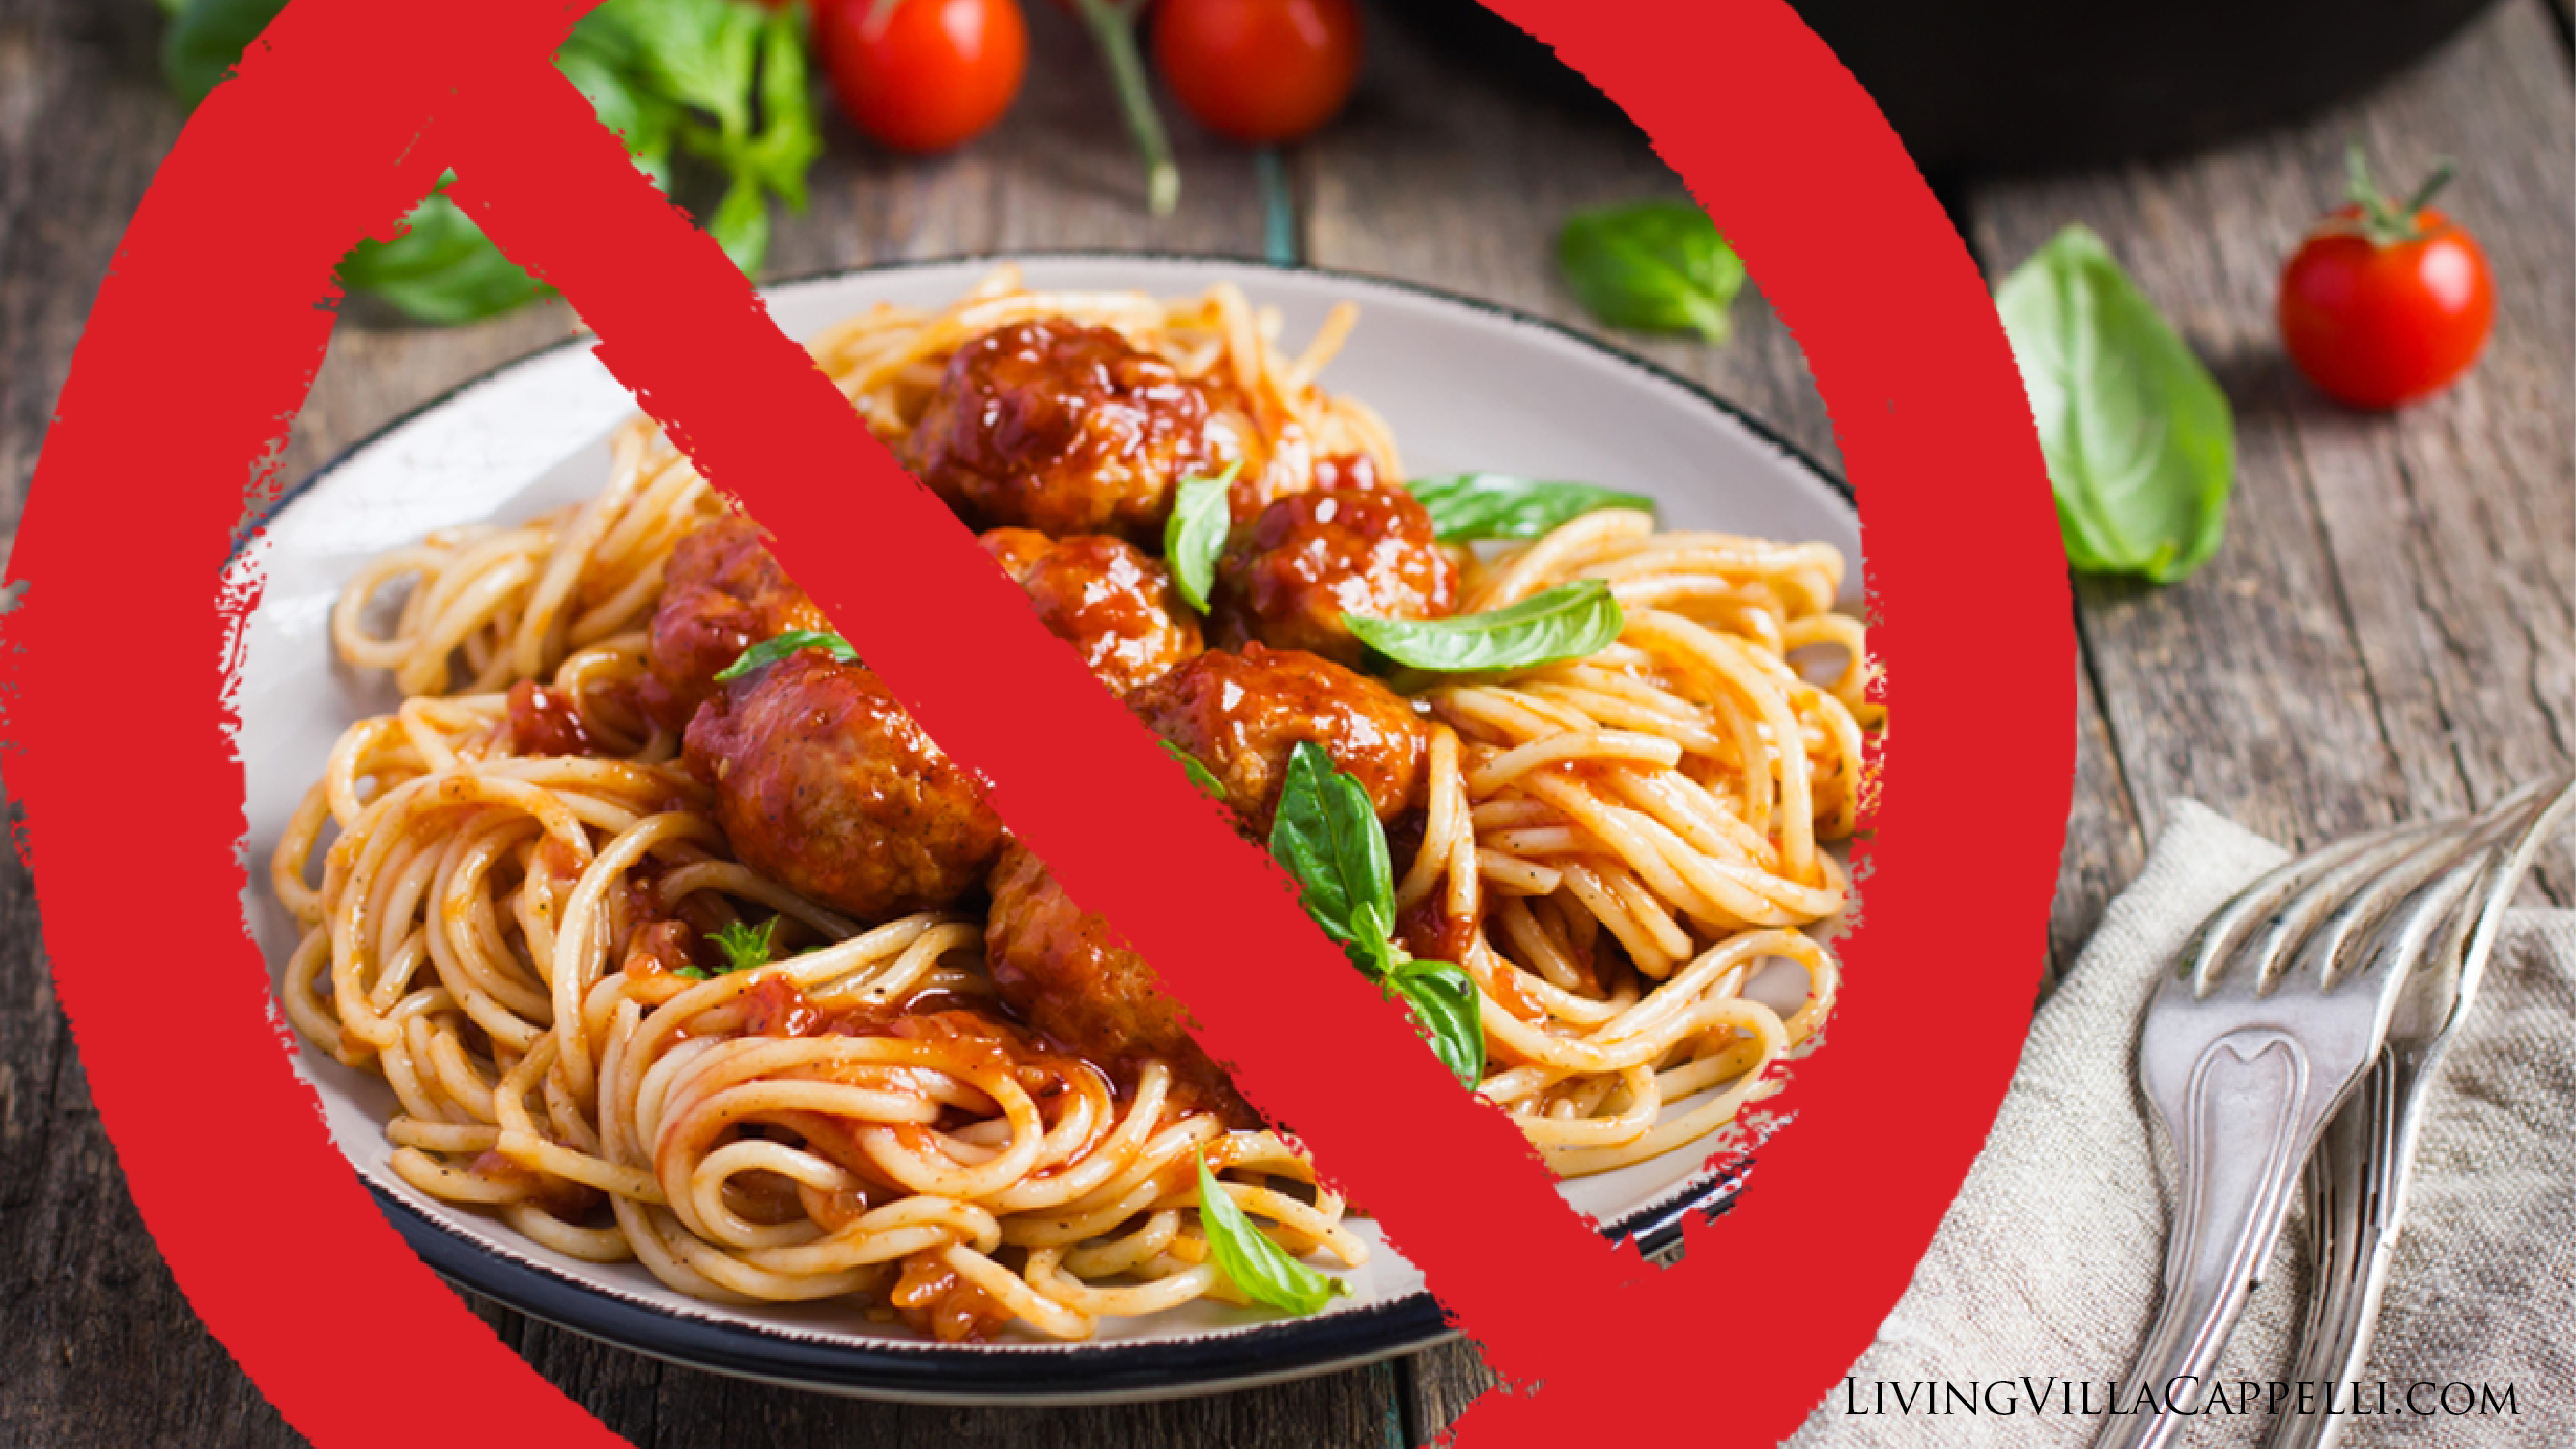 La Cucina Kosher In Italia 032 Traditional Italian Food What Not To Do When It Comes To